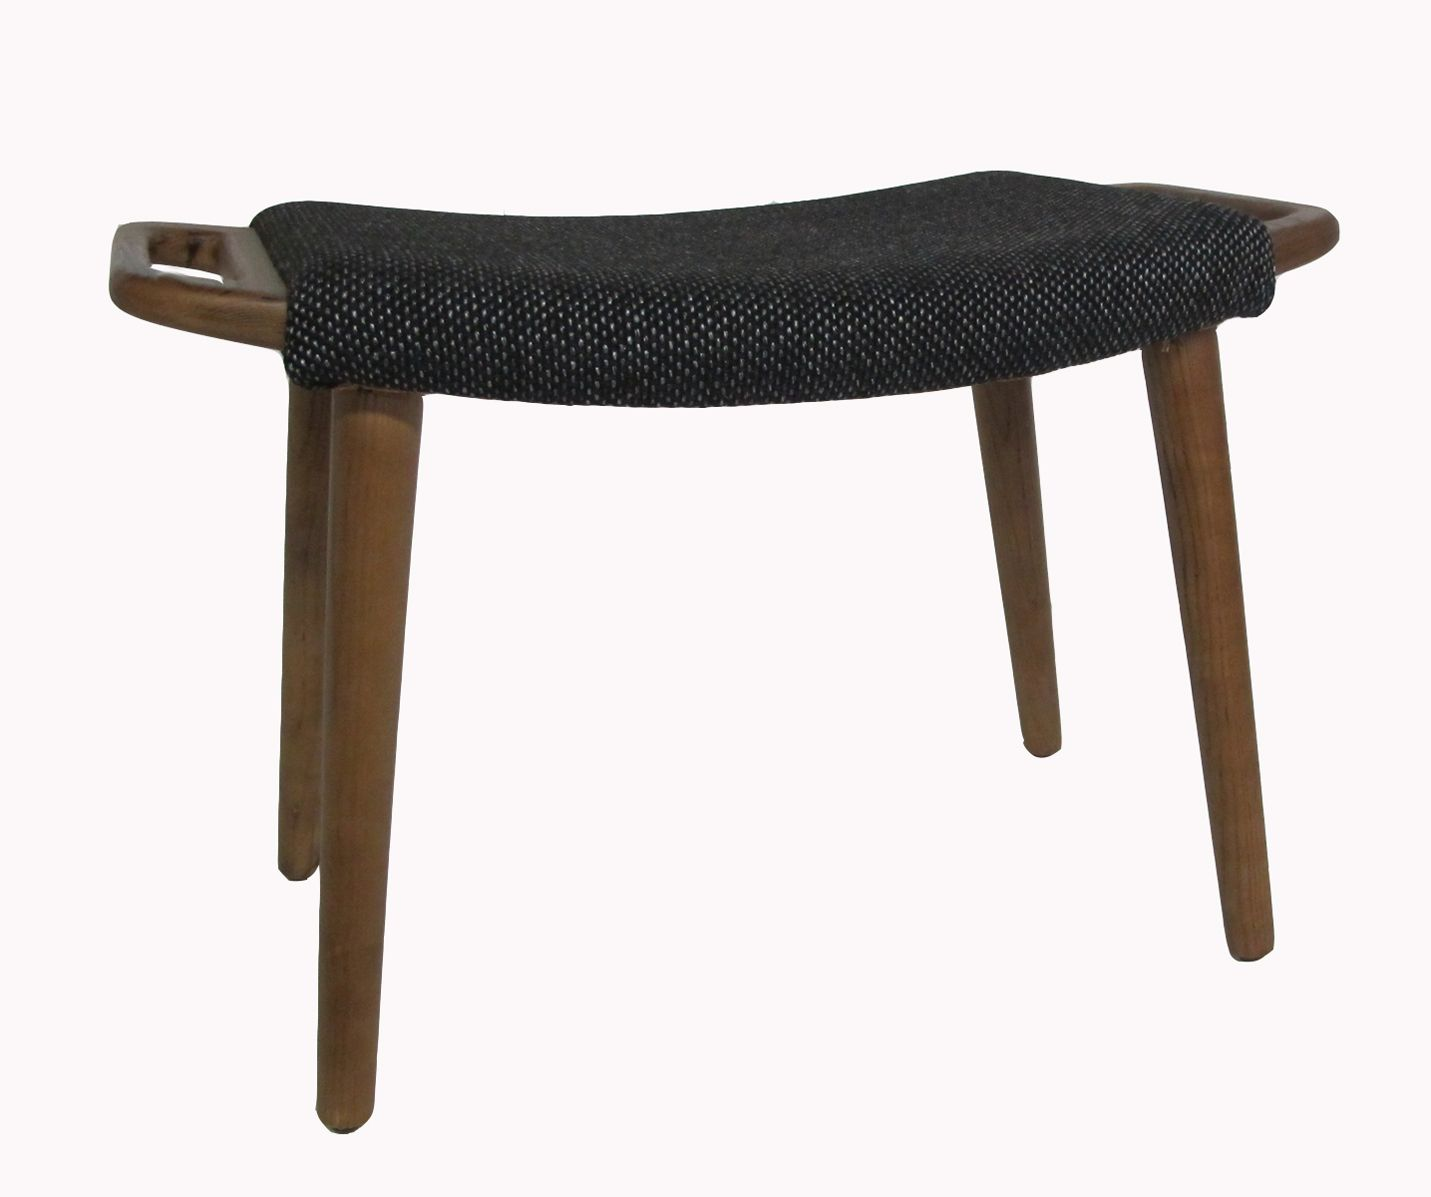 midcentury foot stool - could the legs be shorter?